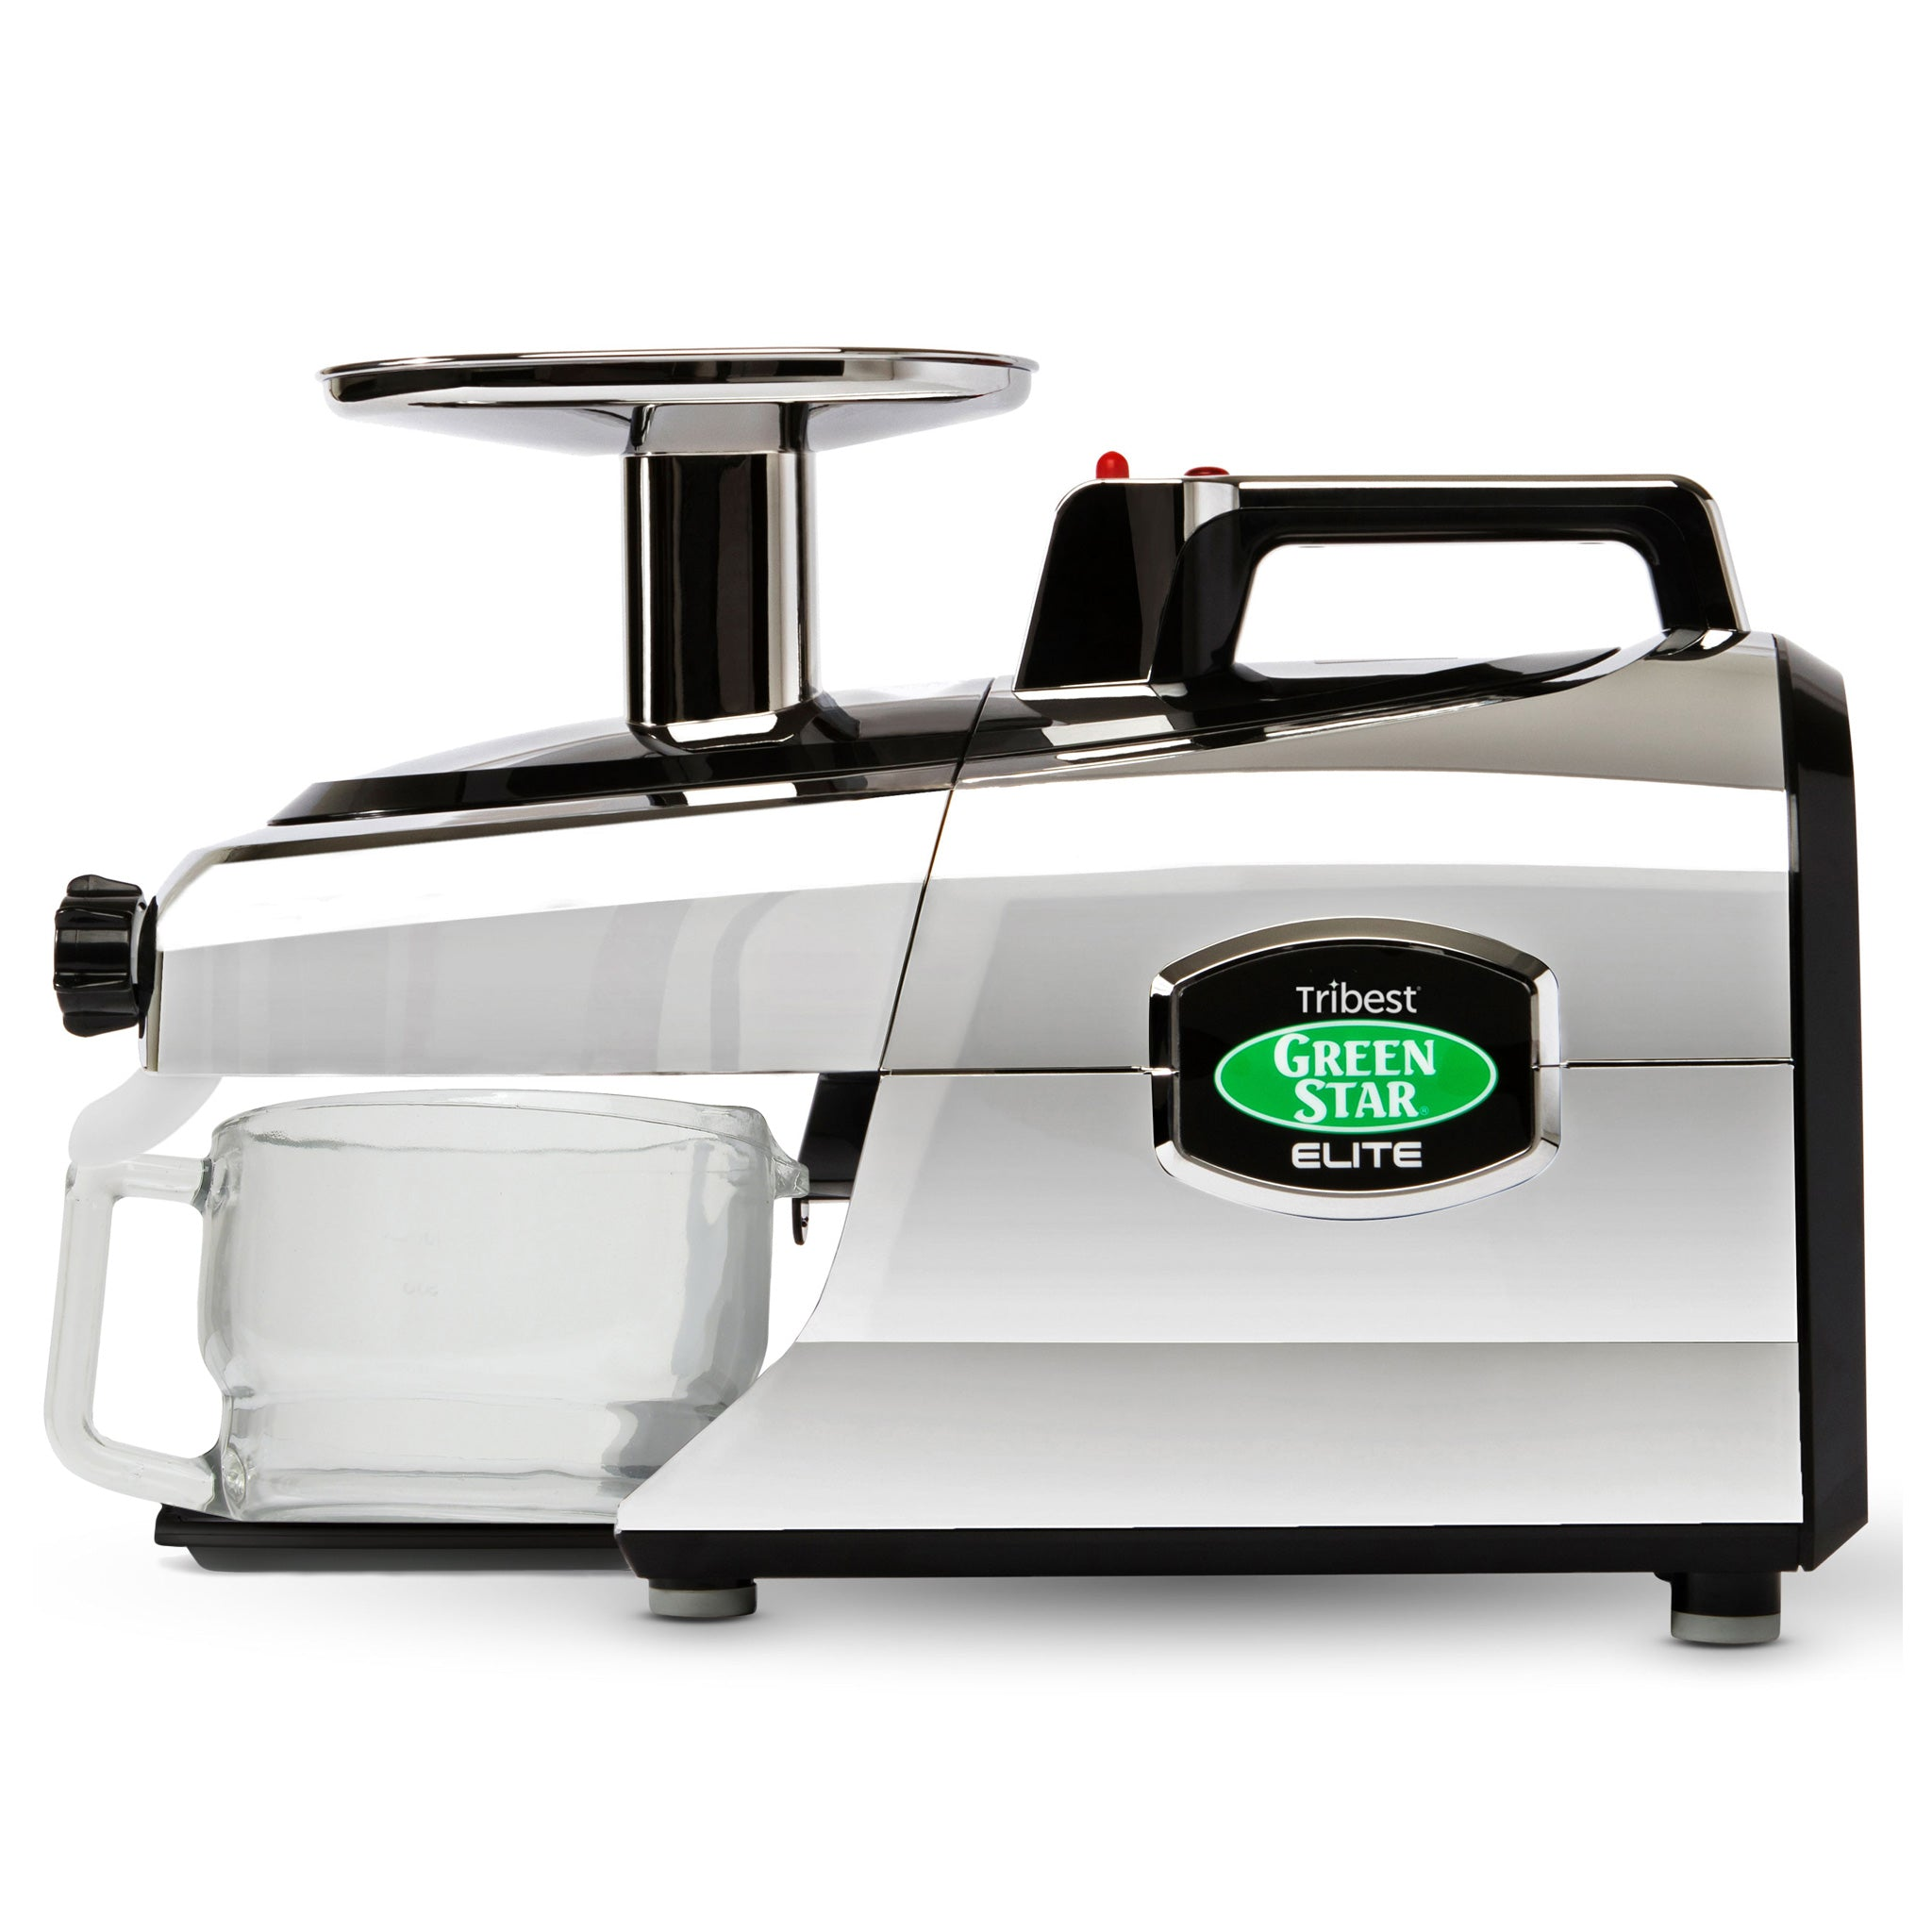 Greenstar® Elite Jumbo Twin Gear Slow Masticating Juicer in Chrome GSE-5050-B - Tribest